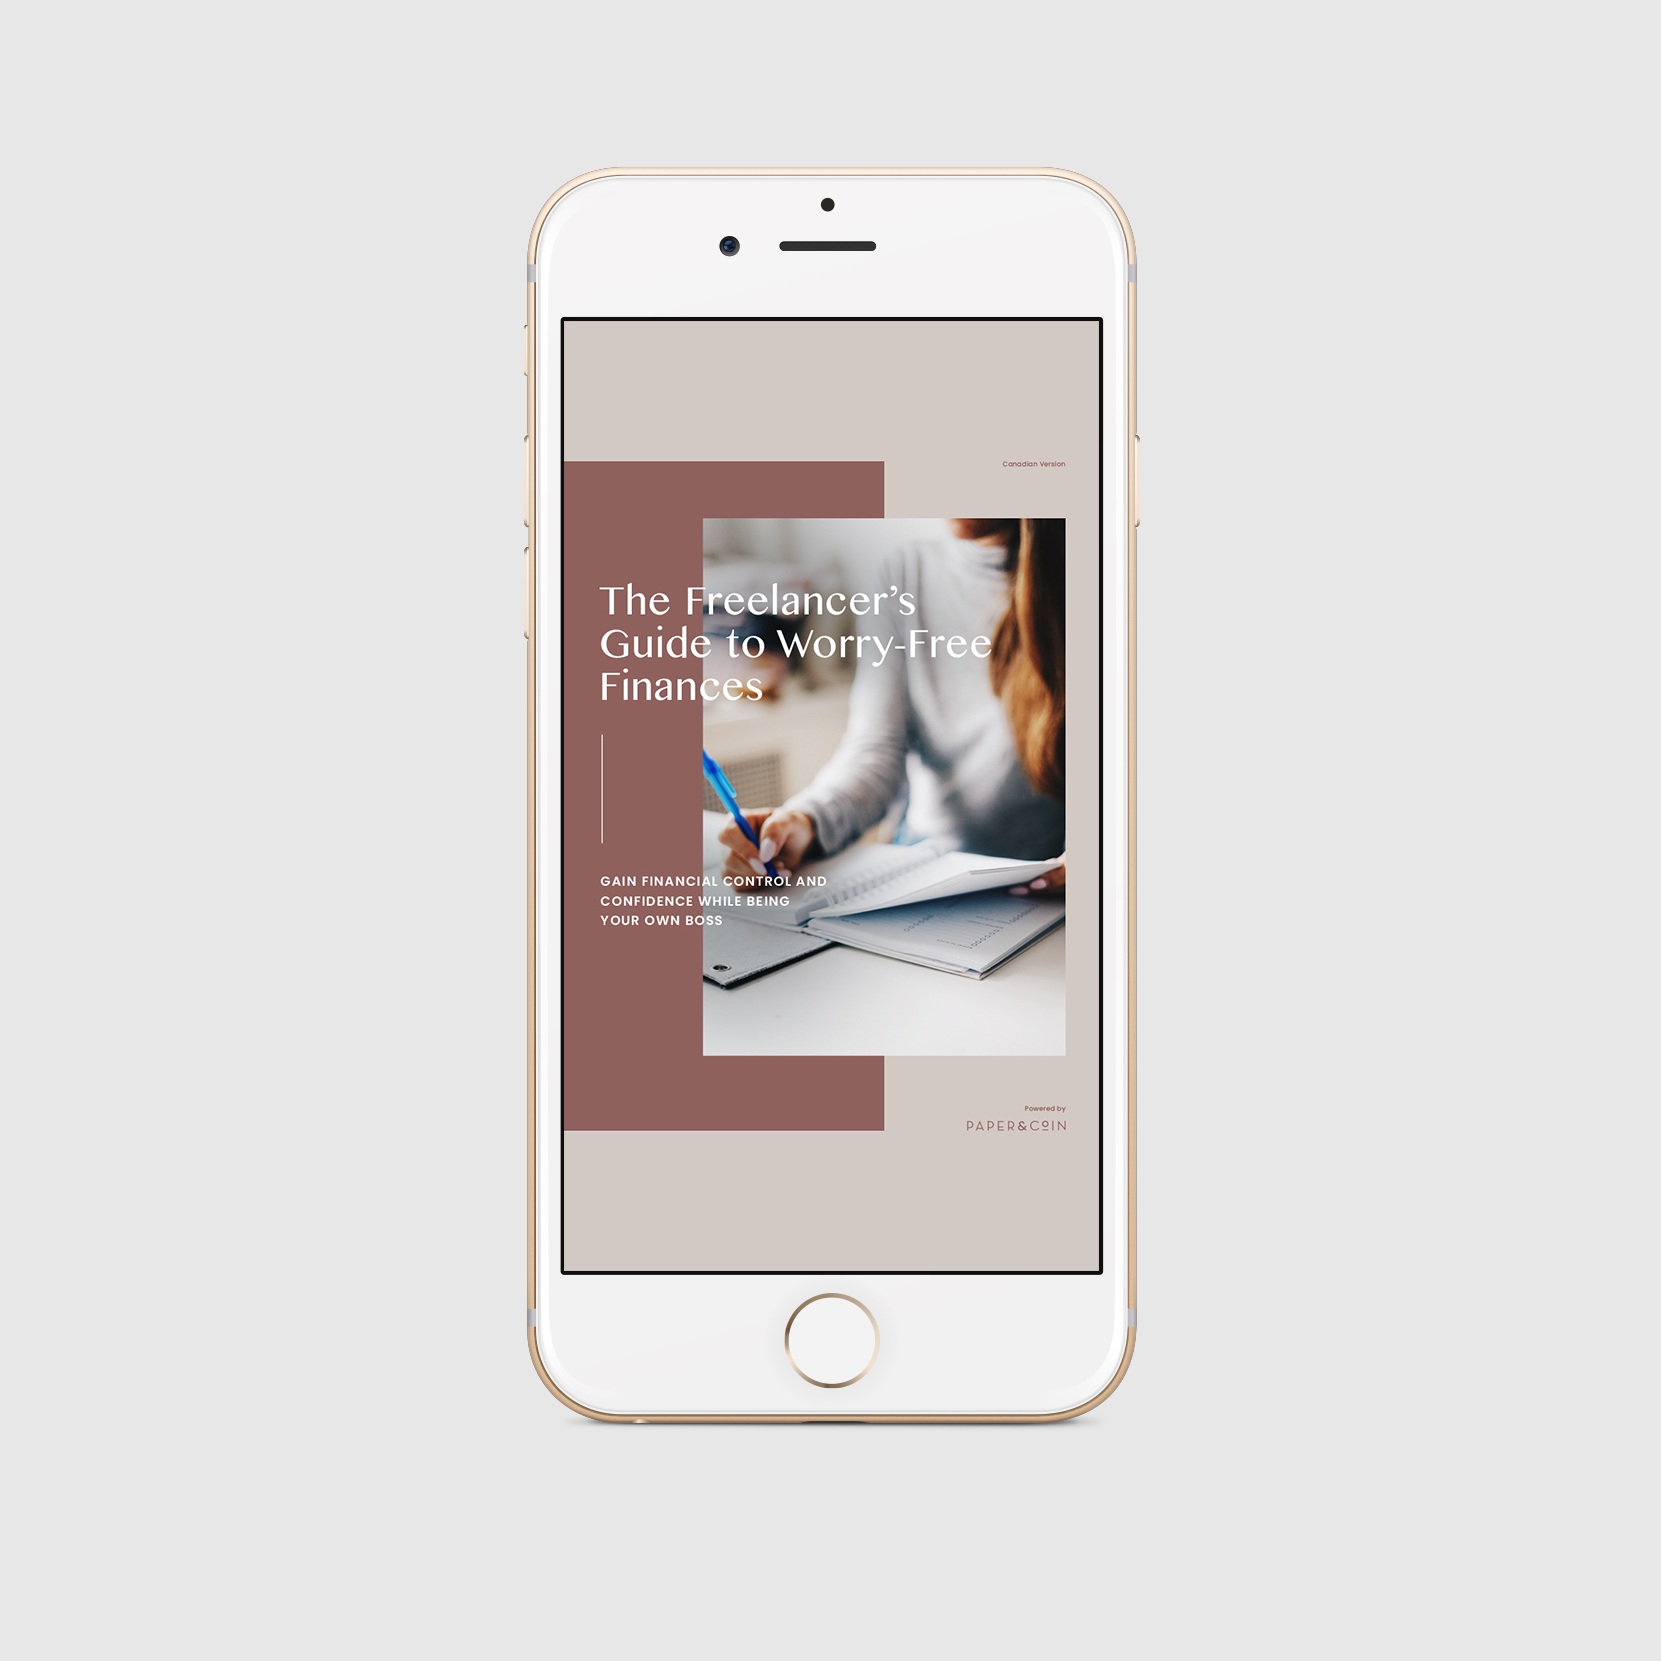 Ebook-Mockup-iPhone-V2.jpg